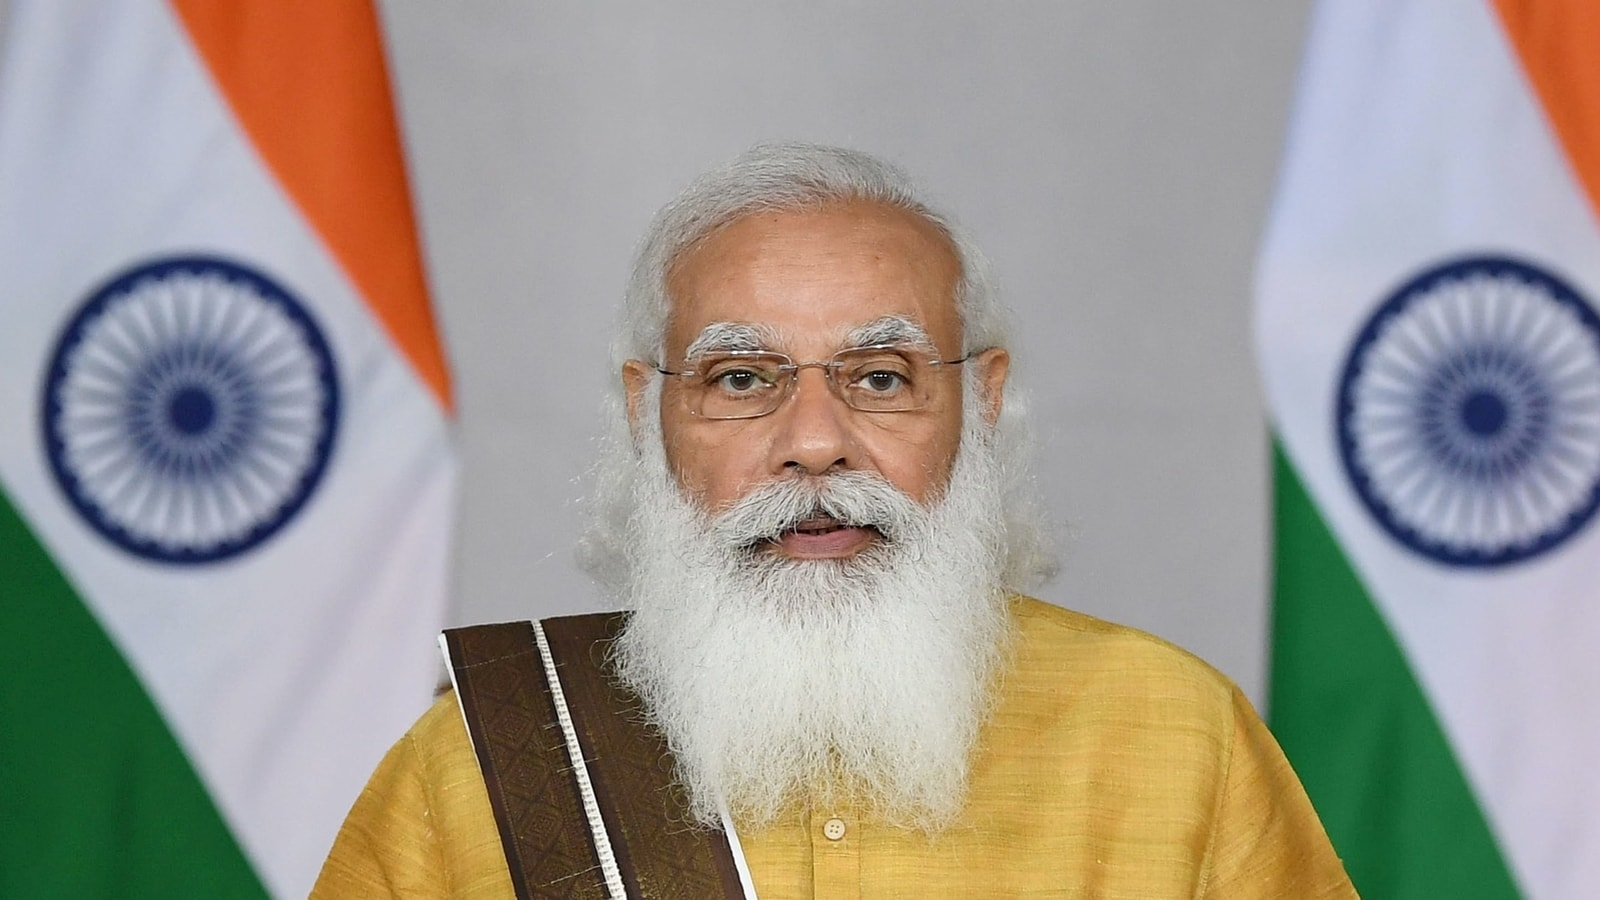 Centre to provide free Covid vaccines to all adults from June 21: PM Modi